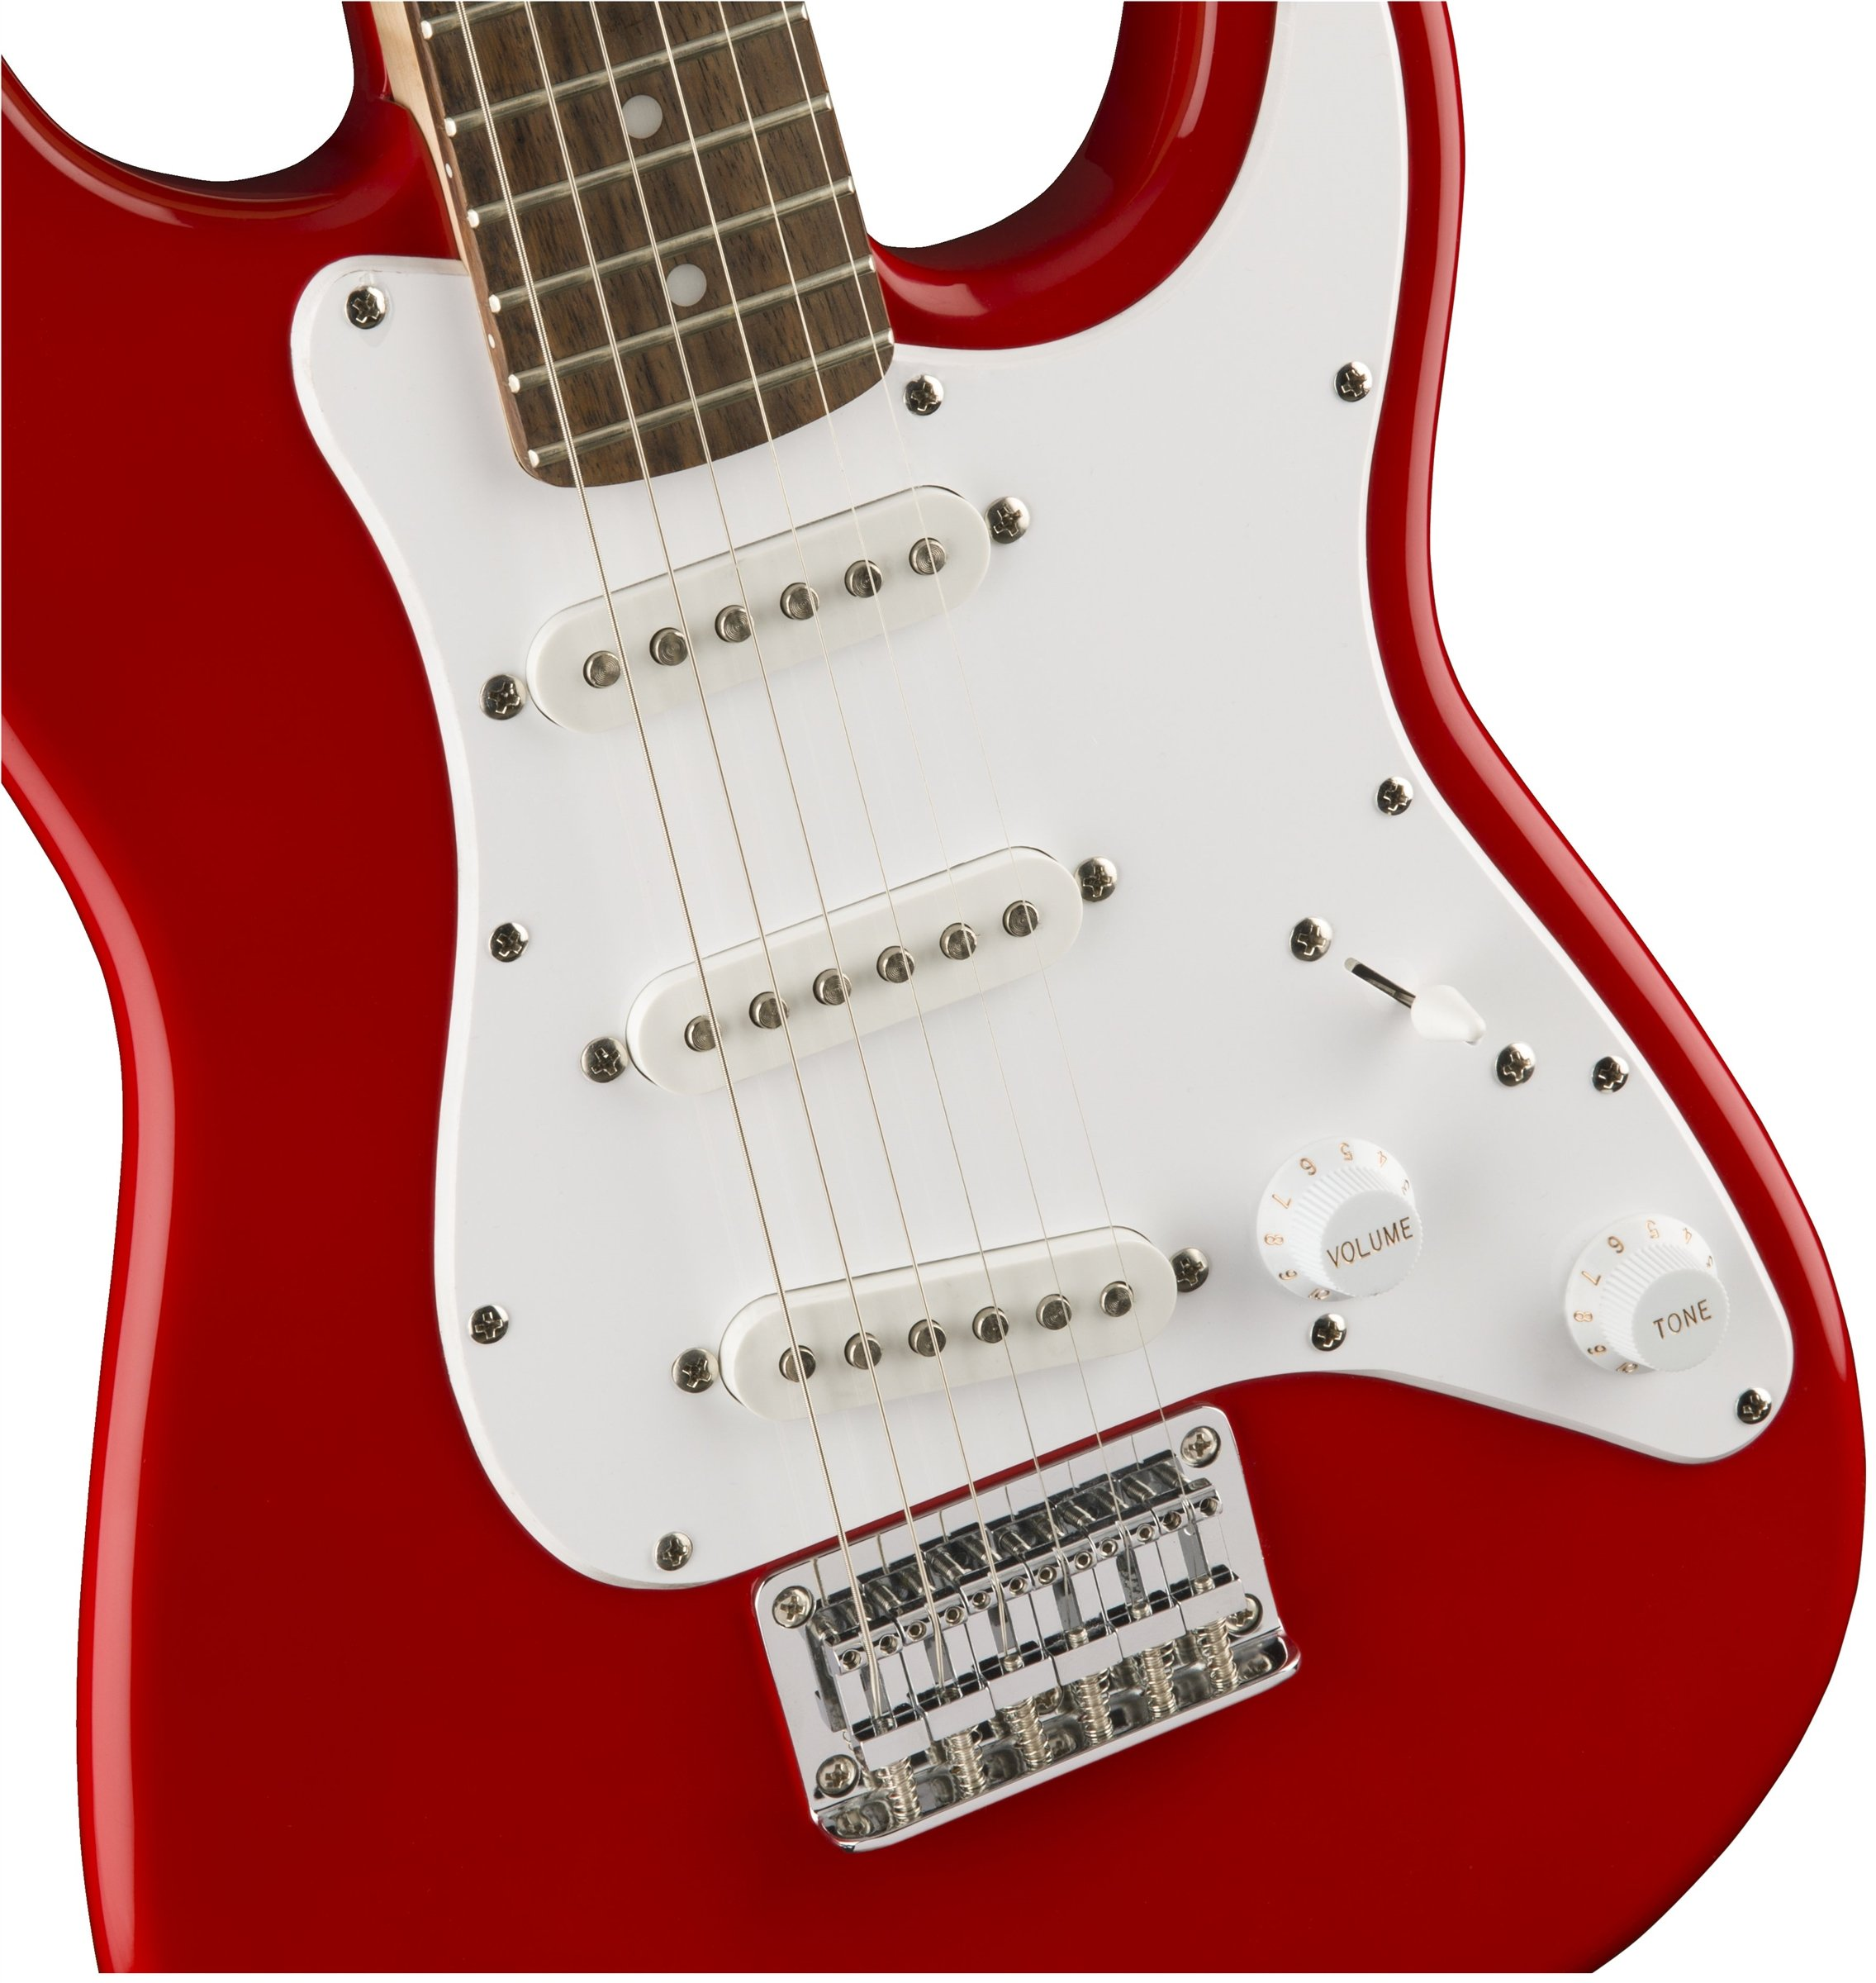 Squier by Fender Mini Stratocaster Beginner Electric Guitar - Indian Laurel Fingerboard - Torino Red by Fender (Image #3)